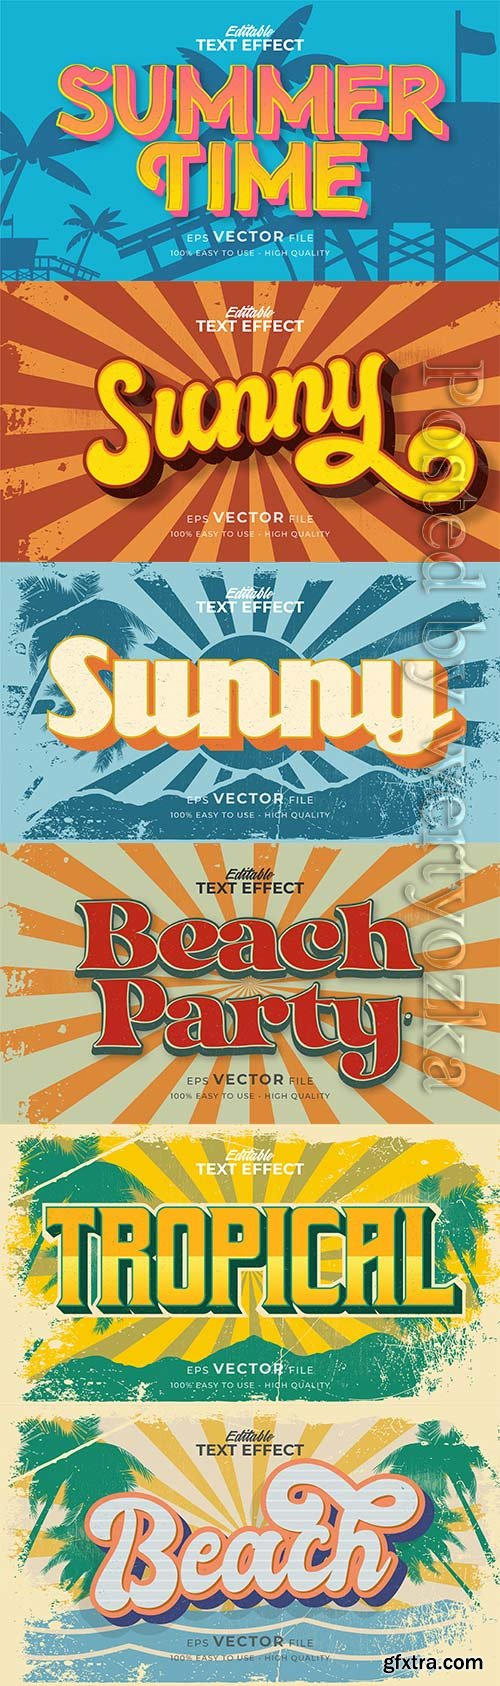 Text style effect, retro summer text in grunge style vol 3